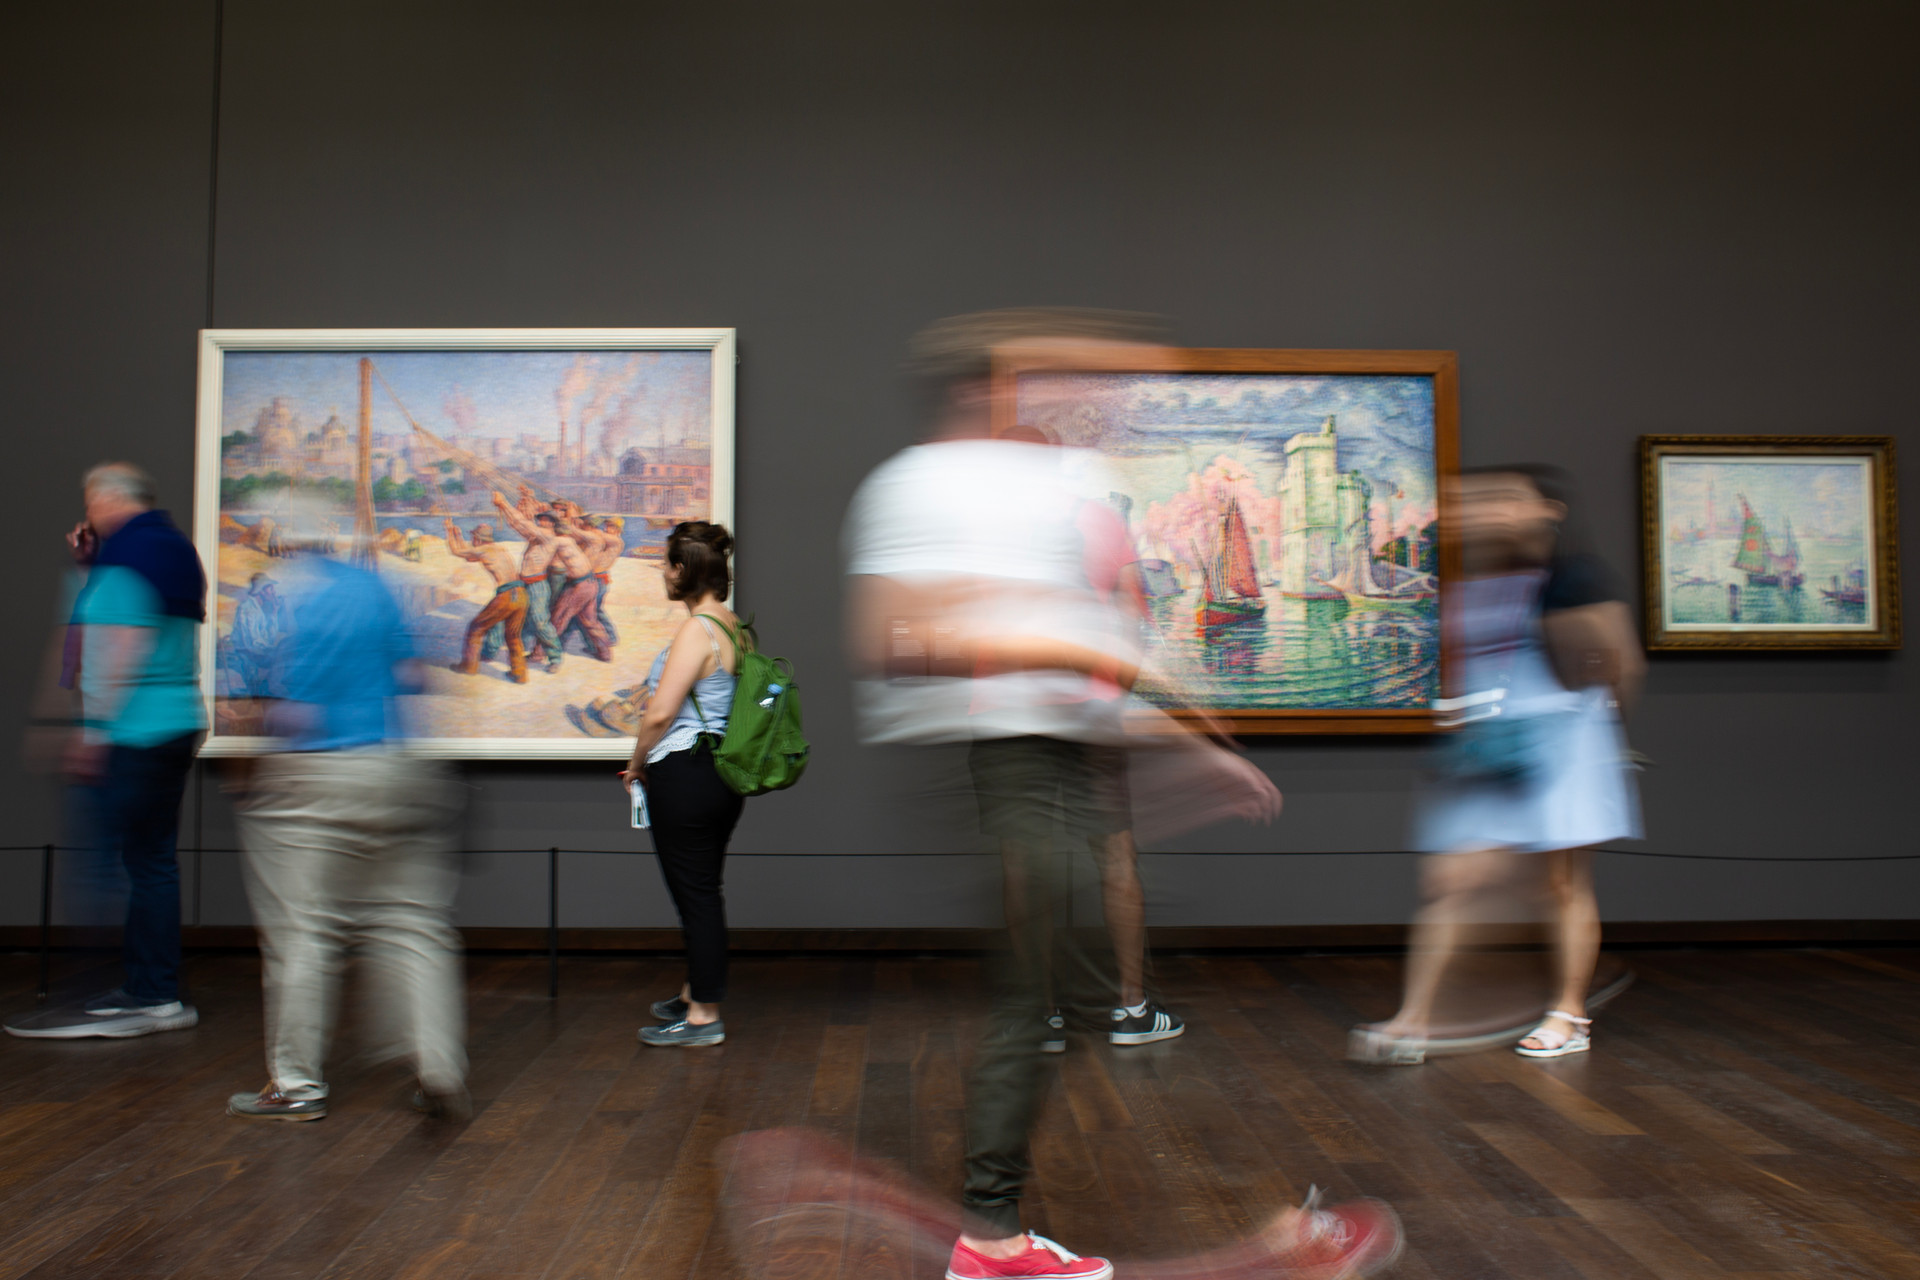 Visitors walk in the Impressionist gallery at the Musee D'Orsay in Paris, France.